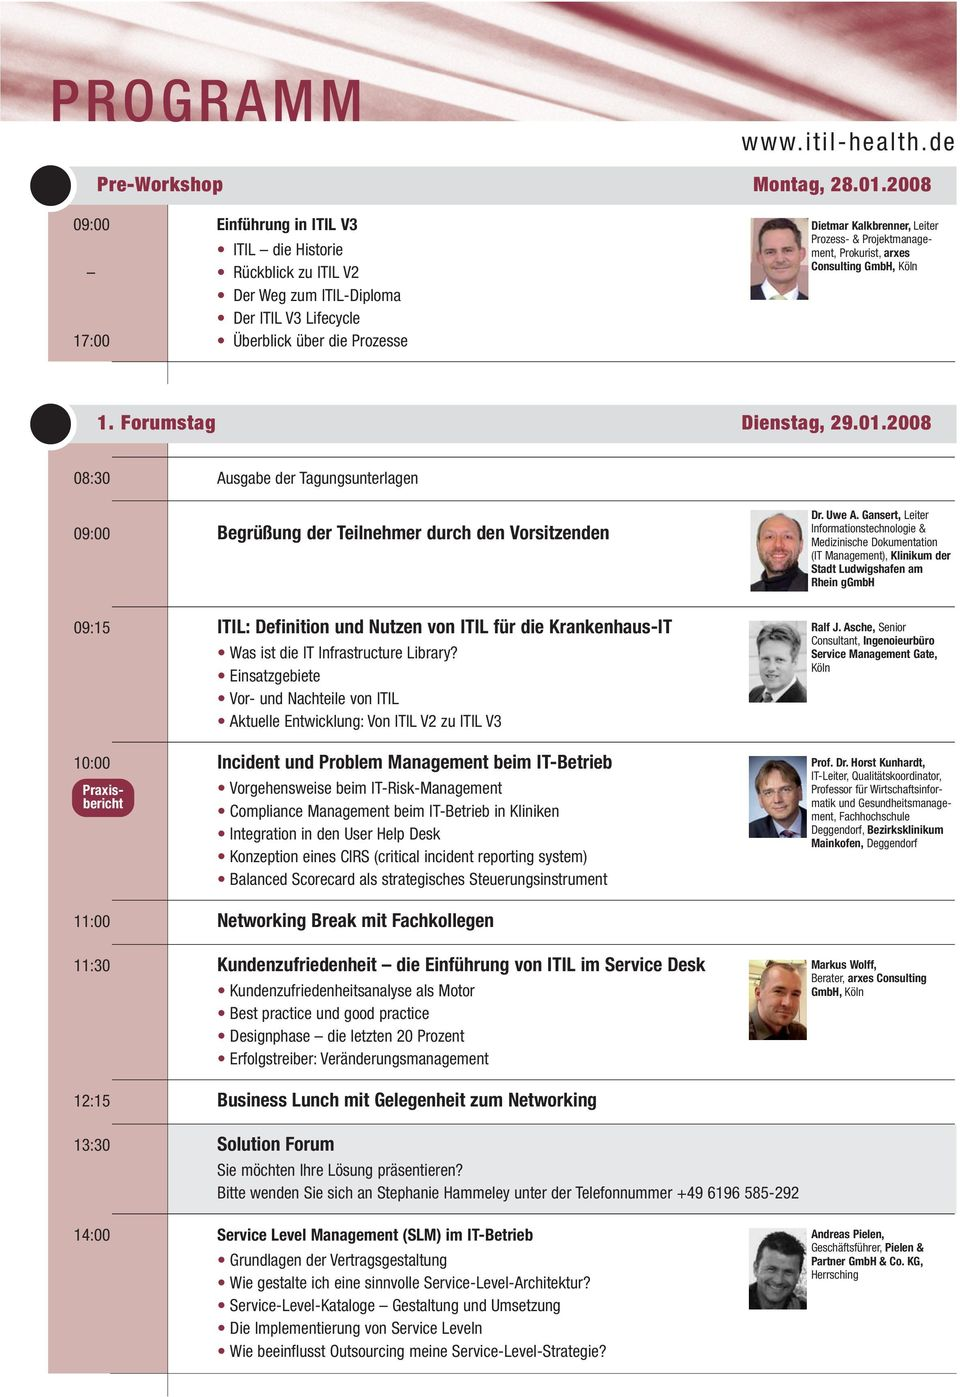 manage - ment, Prokurist, arxes Consulting GmbH, Köln 1. Forumstag Dienstag, 29.01.